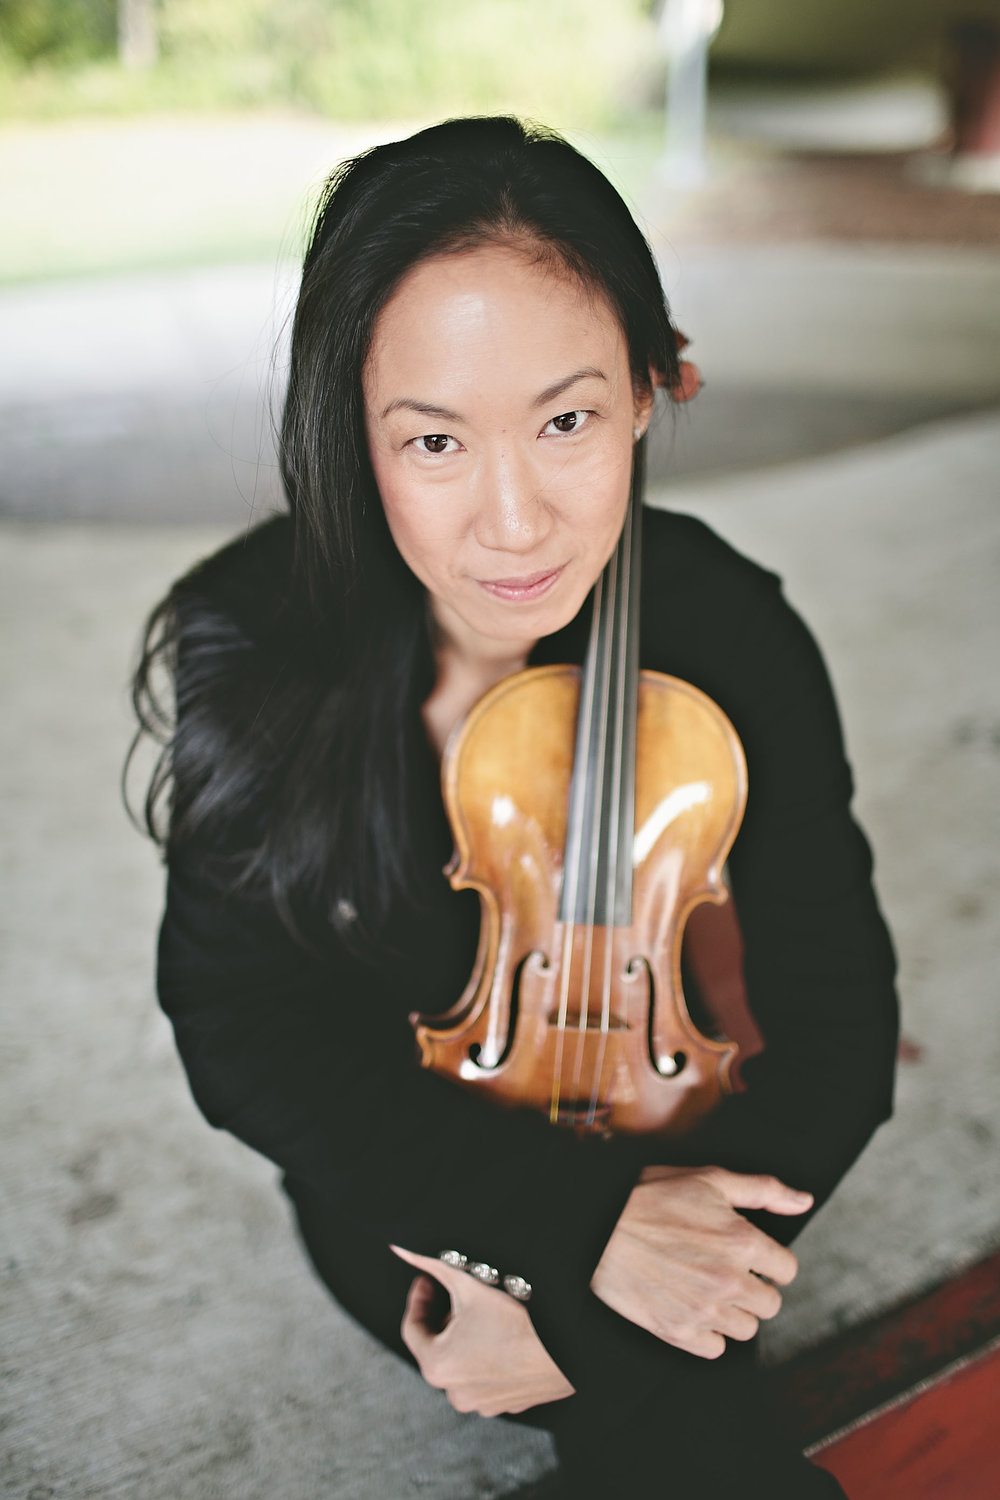 Yvonne Hsueh,principal second violin - Yvonne Hsueh, a native of Los Angeles, resides in Eugene, Oregon. She has been Principal Second Violin of the Oregon Mozart Players in Eugene since 1992, and is a member of the Eugene Symphony and the Sunriver Music Festival in Central Oregon. She is an active symphonic violinist, recitalist, chamber musician and soloist, having appeared as soloist with orchestras around the United States and abroad. She also maintains an active studio, and is currently on the faculty of Lane Community College. She performs on a violin made by Gregg Alf. She also performs on baroque violin made by David Gussett.